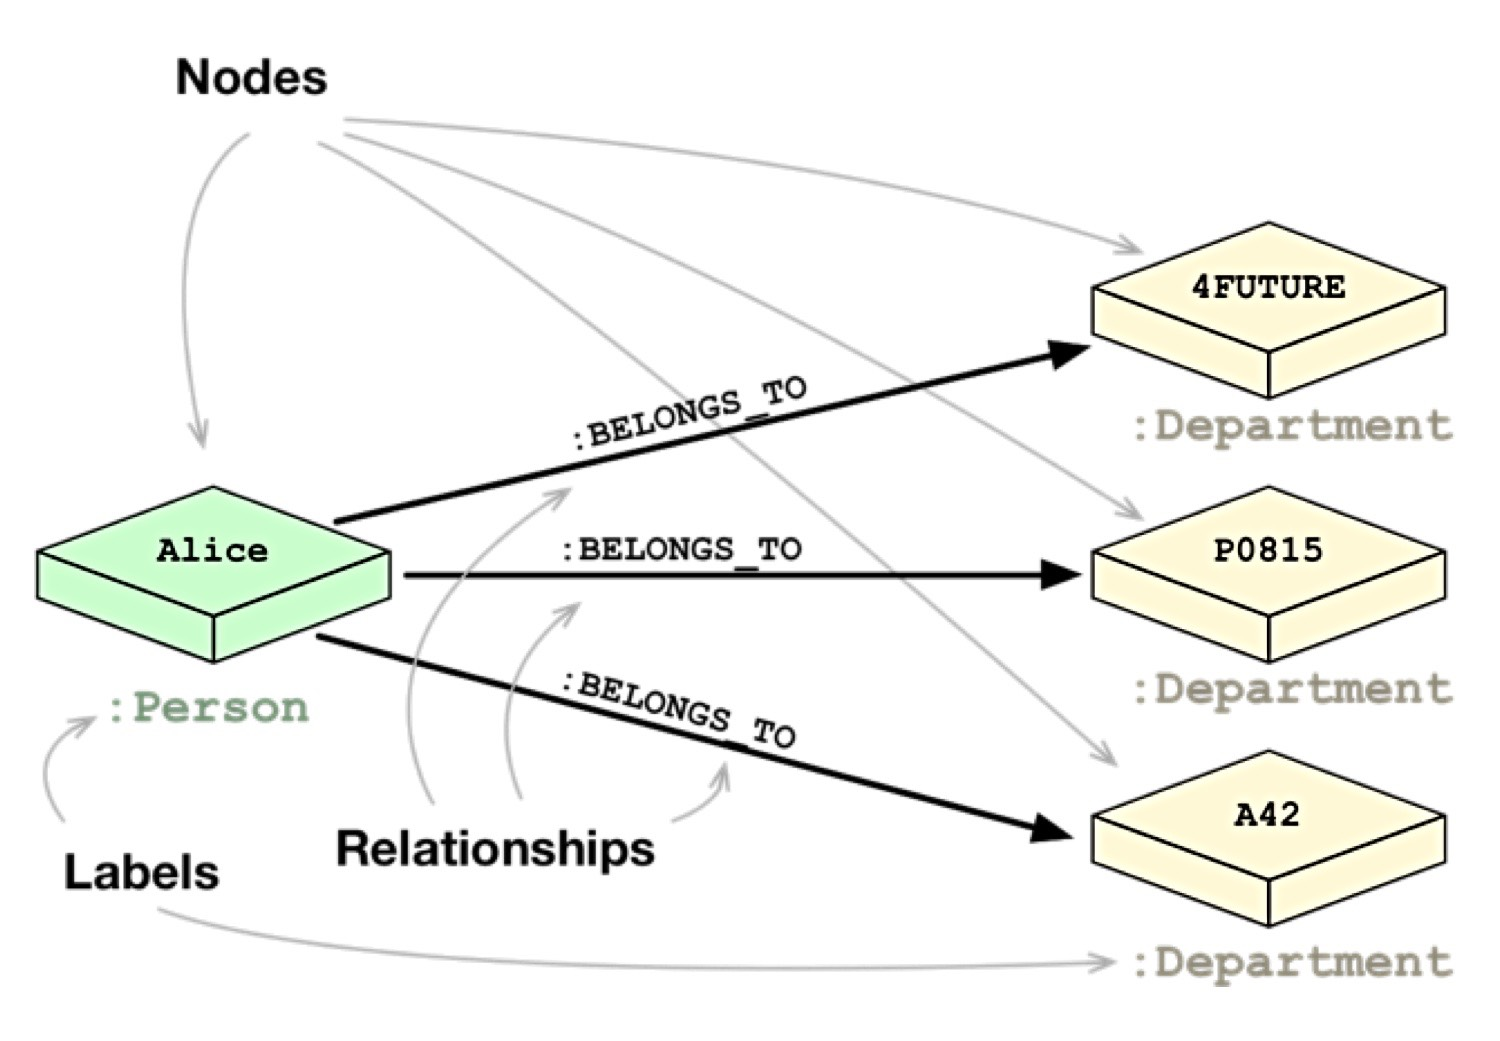 Neo4j nodes and relations